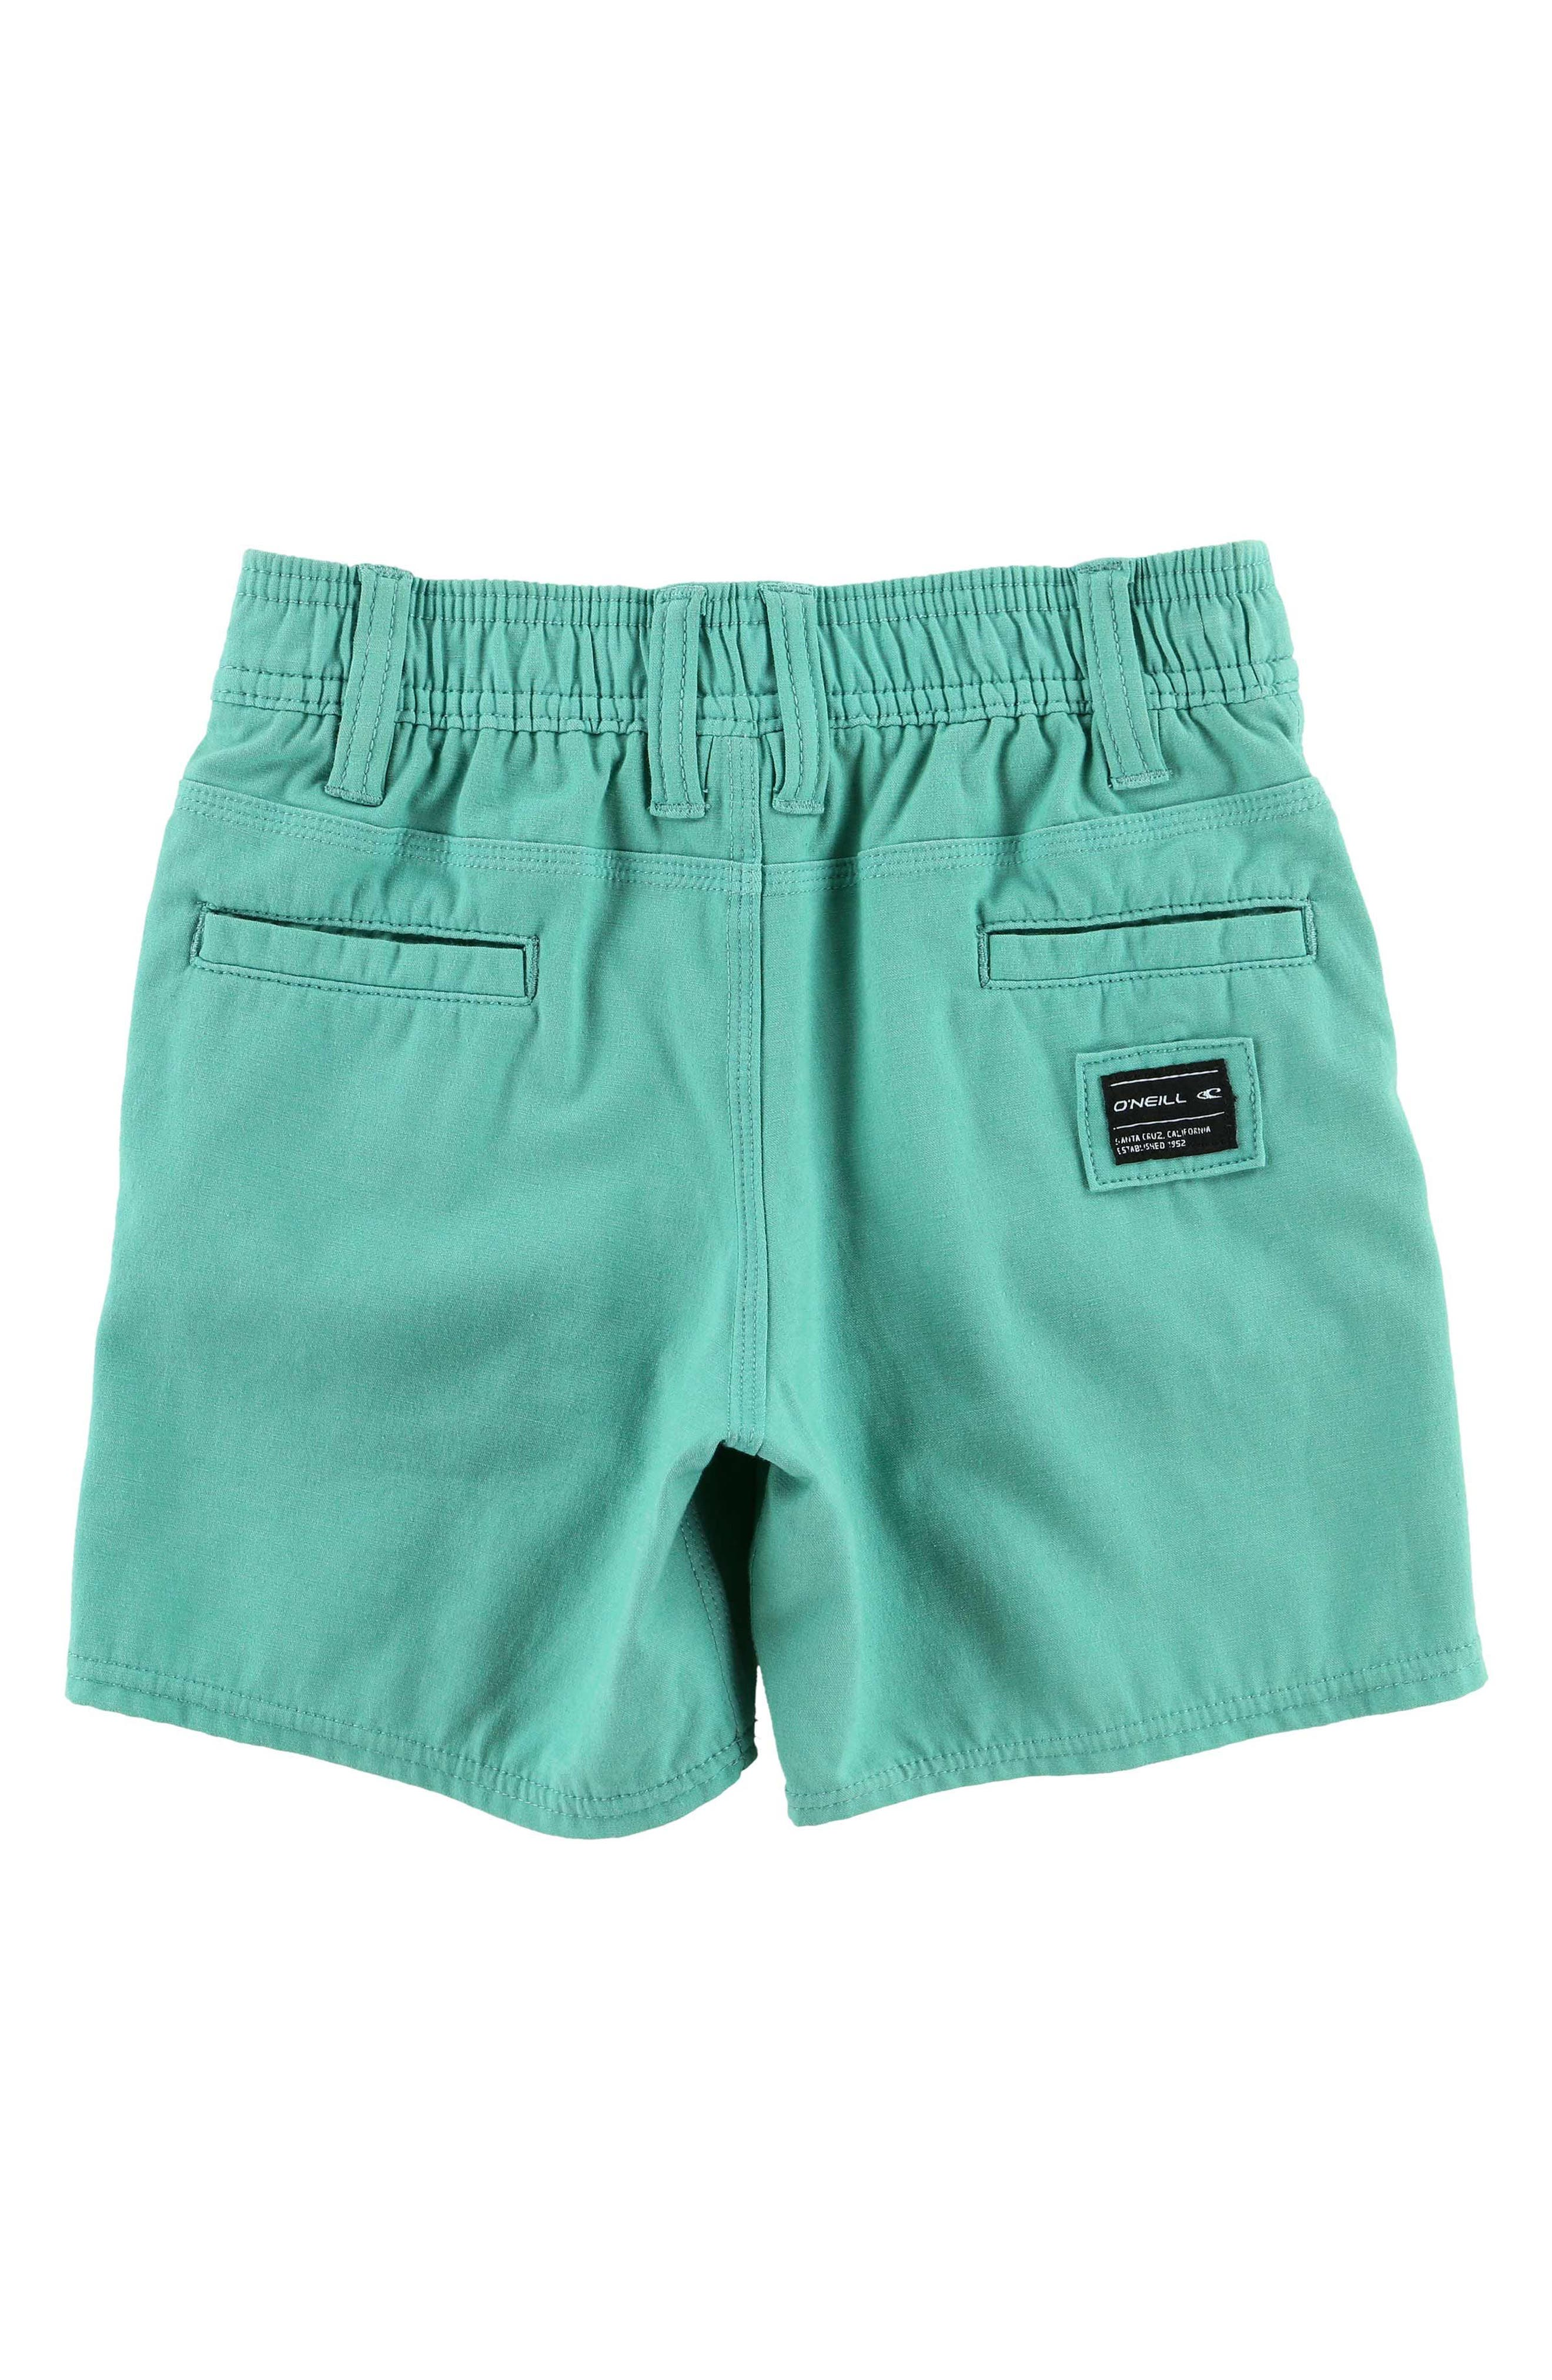 Locked Hybrid Board Shorts,                             Alternate thumbnail 2, color,                             Jade